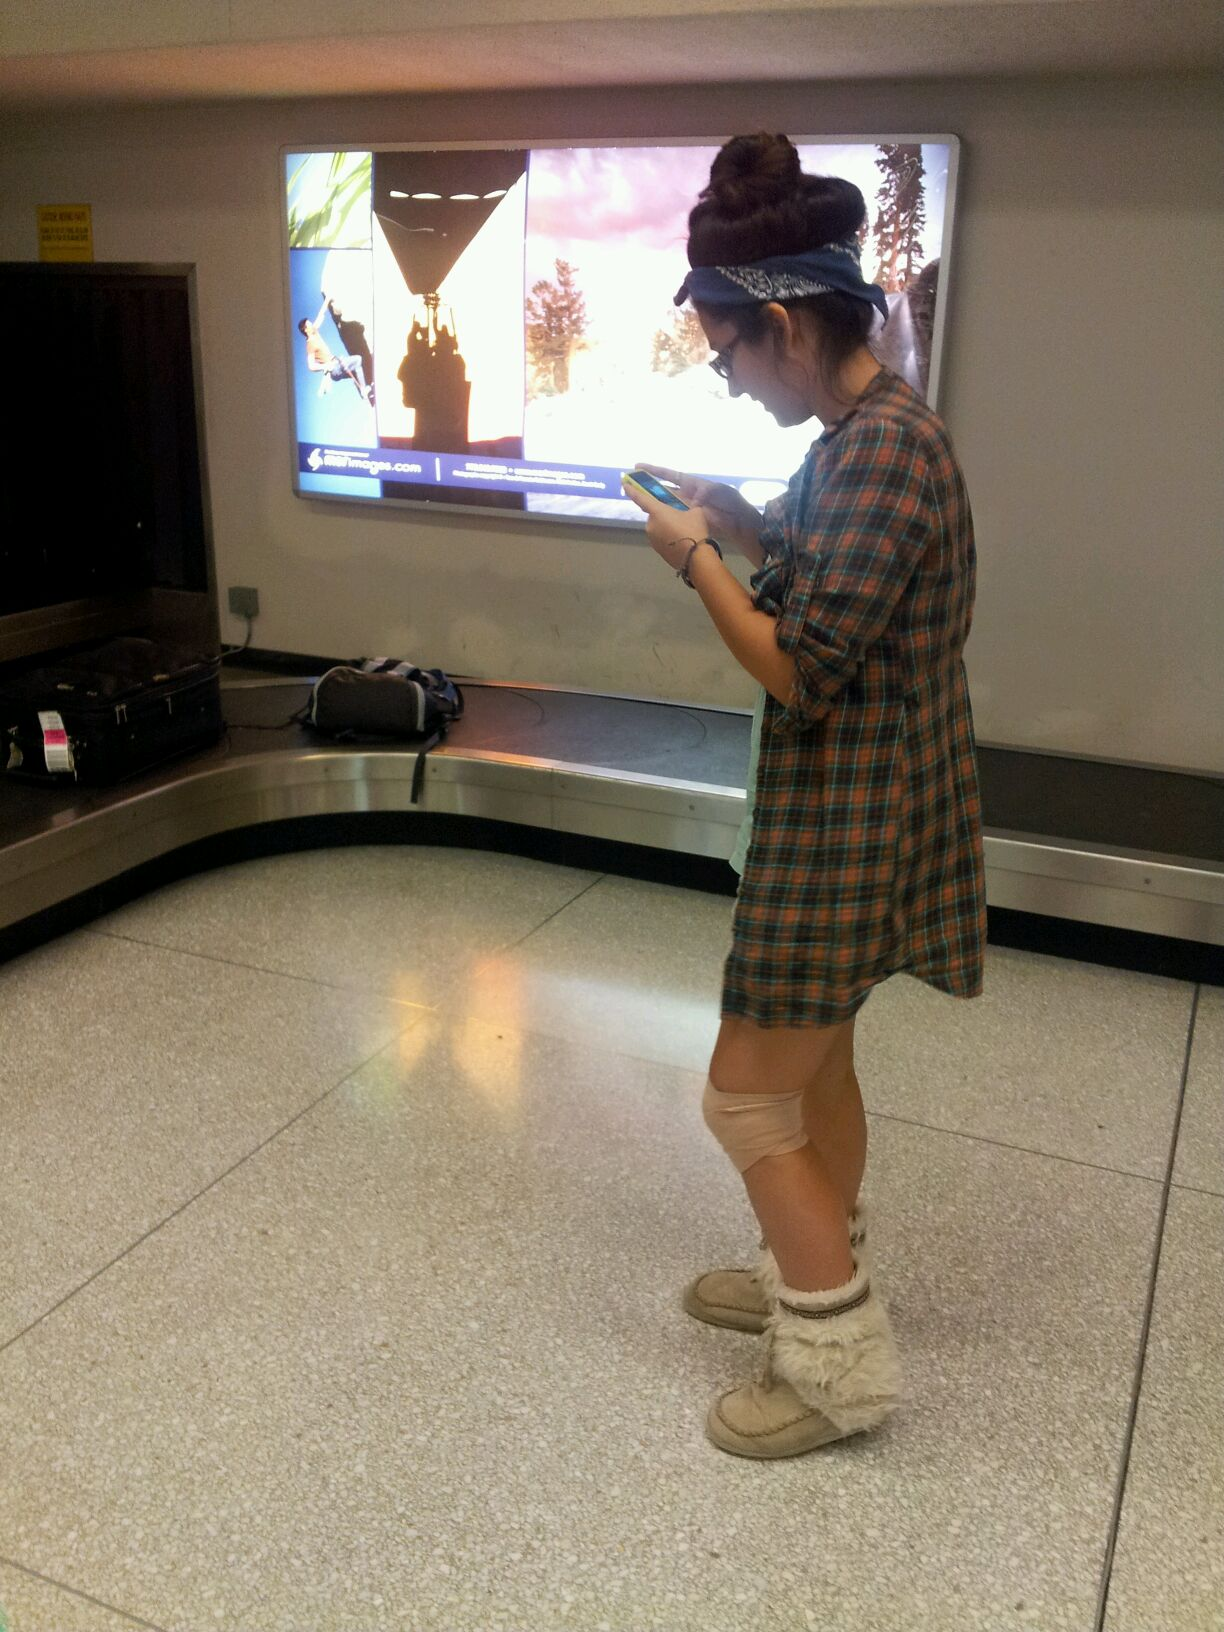 picture from the spokane airport last august. yeah, i really wore that in public...